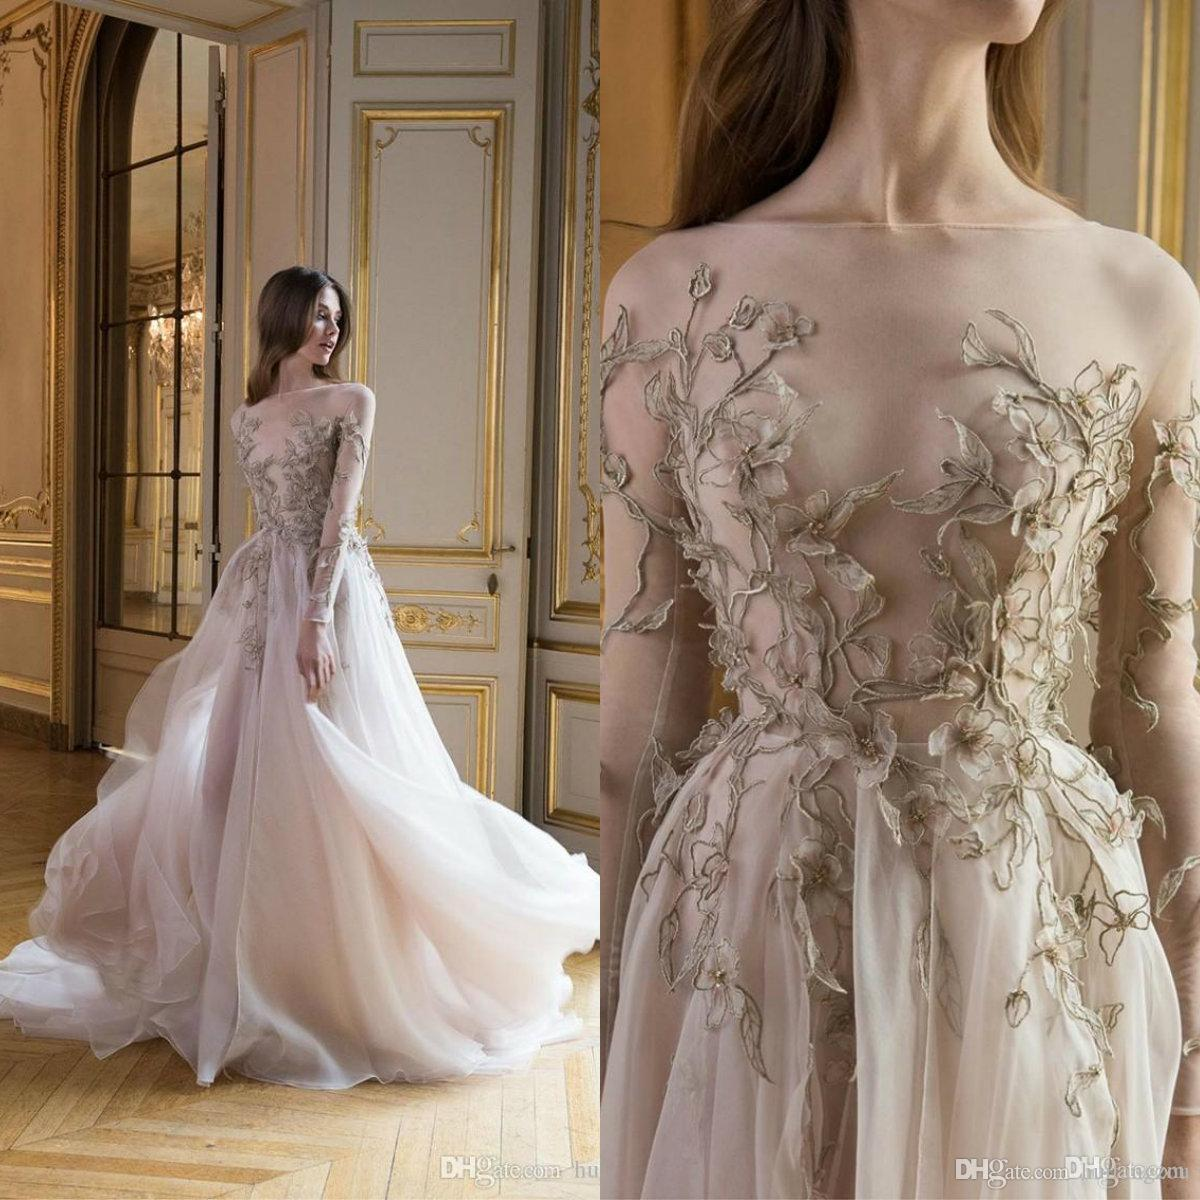 Illusion Evening Dresses Long Sleeves Free Shipping Sheer Neck 3D Floral Applique Floor Length Custom Made Formal Dresses